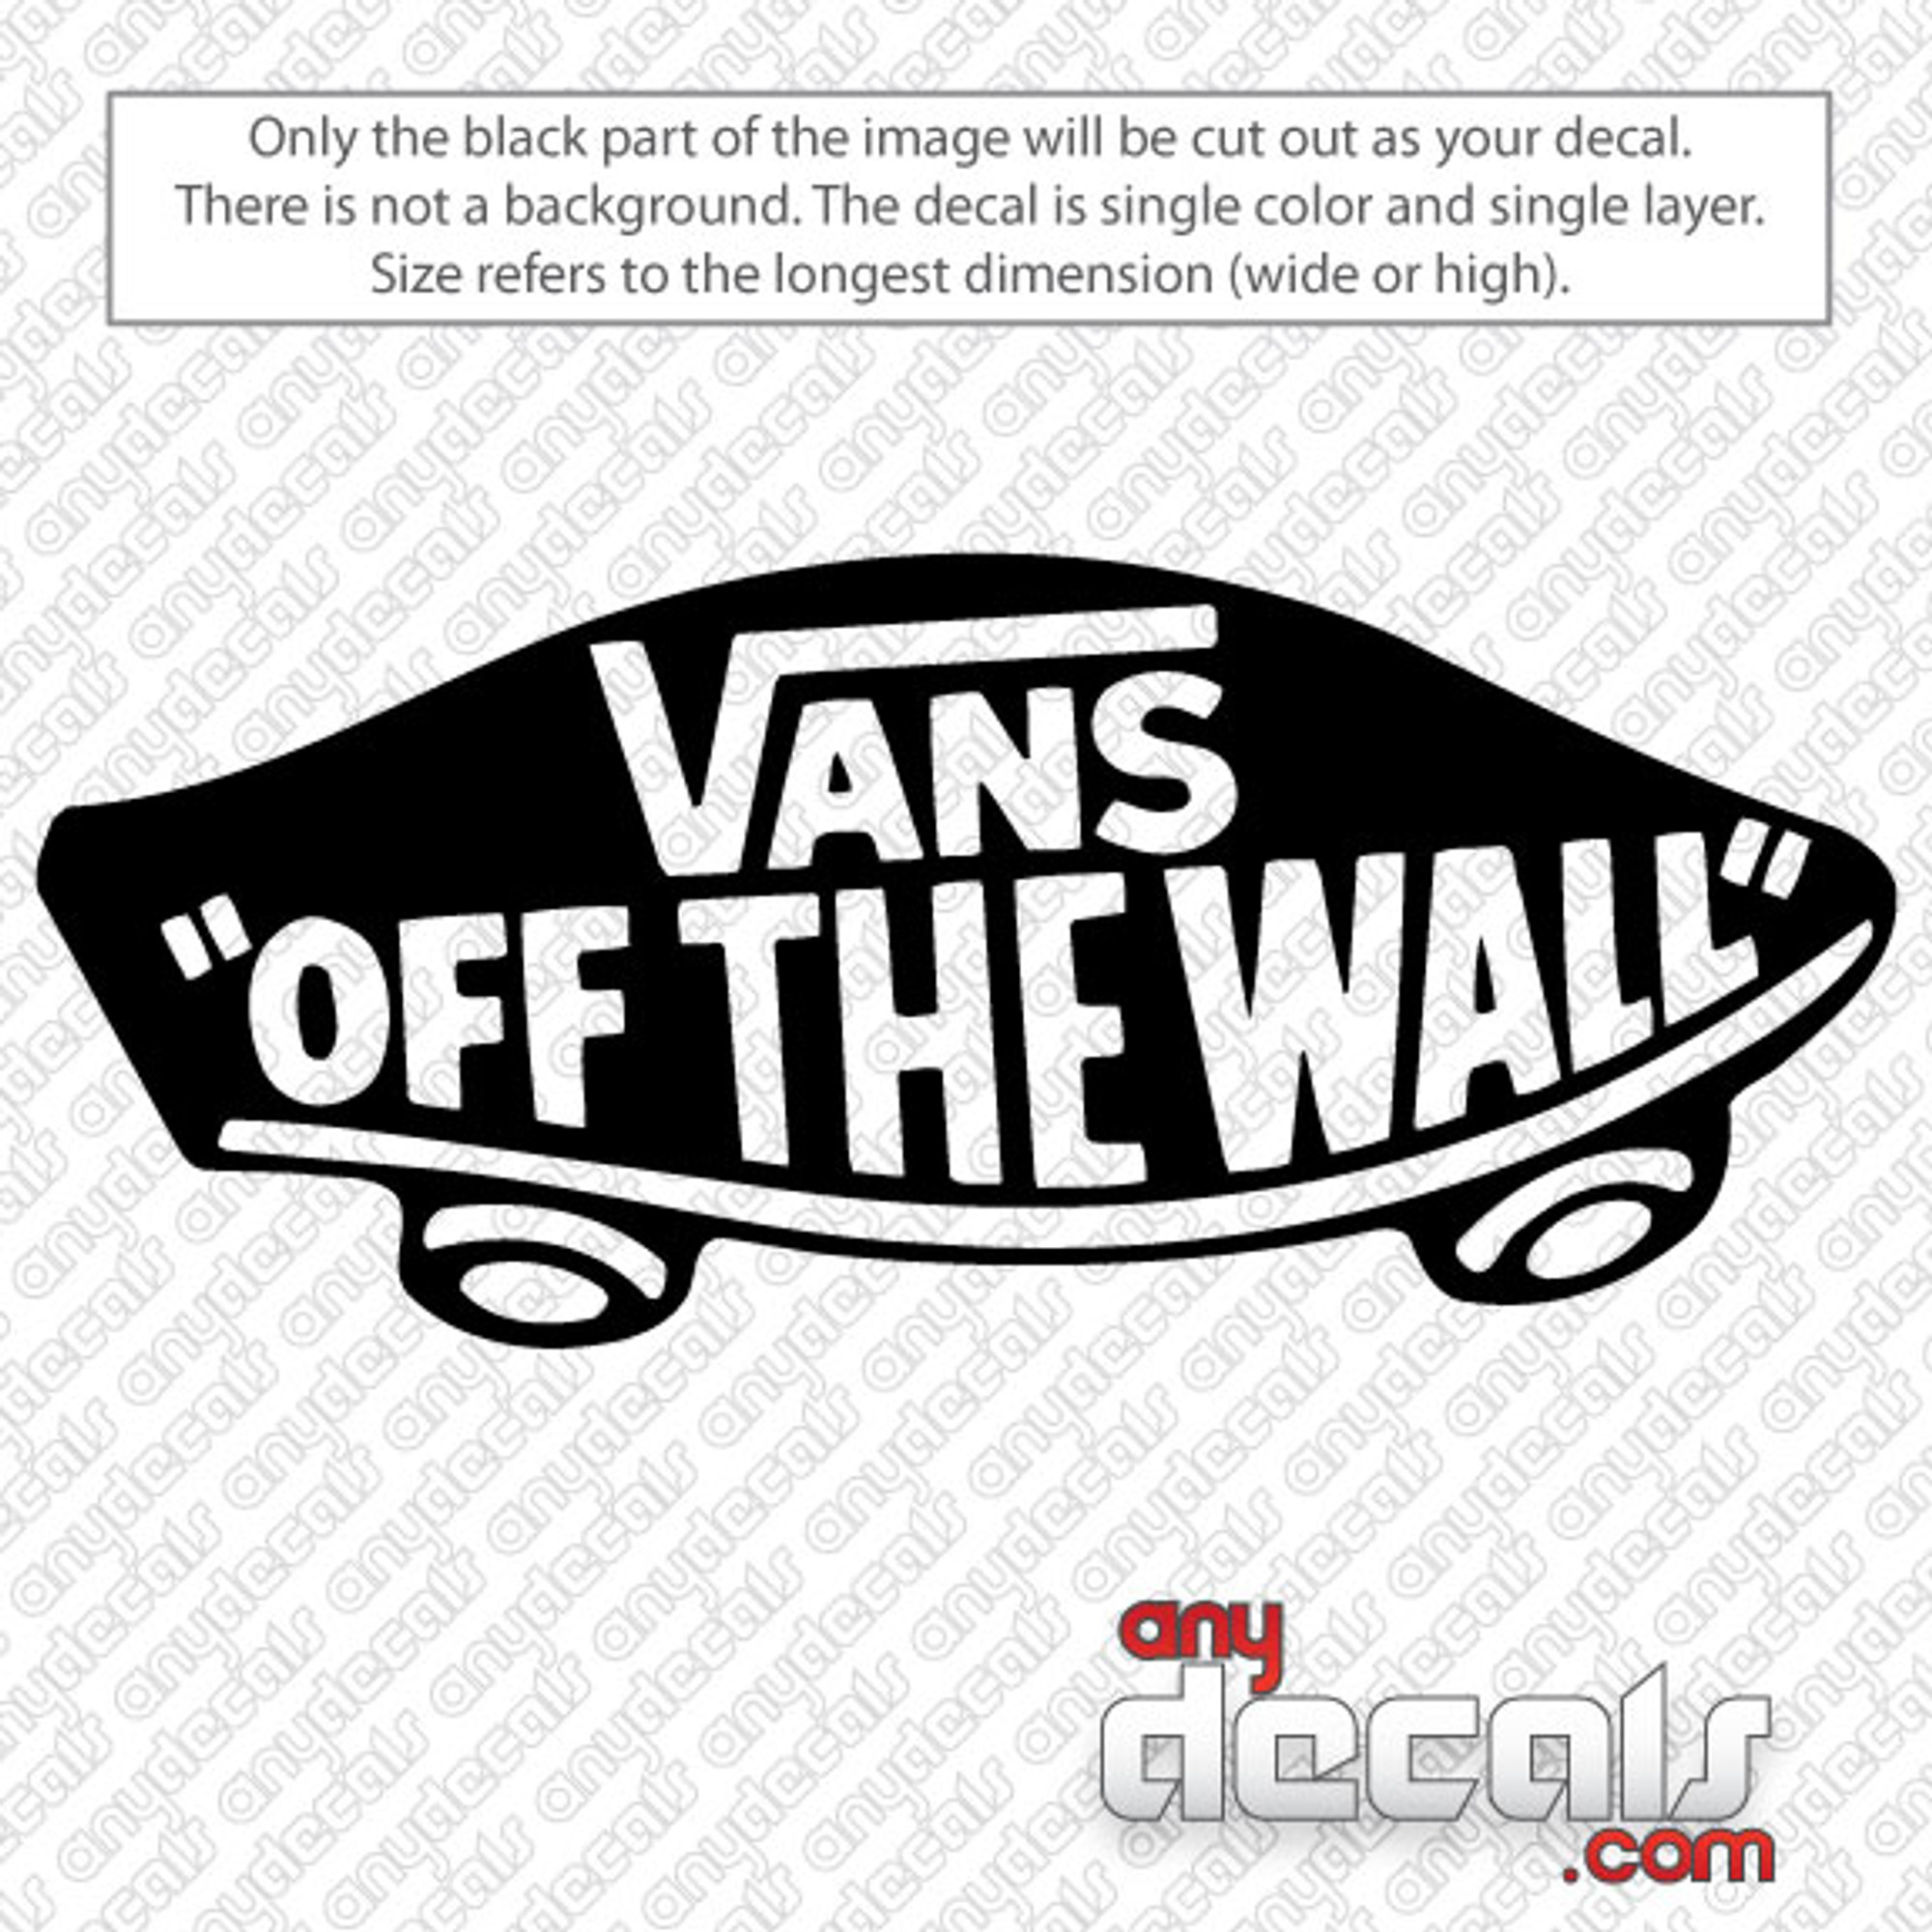 Surf decals skate decals surf stickers skate stickers vans car decals